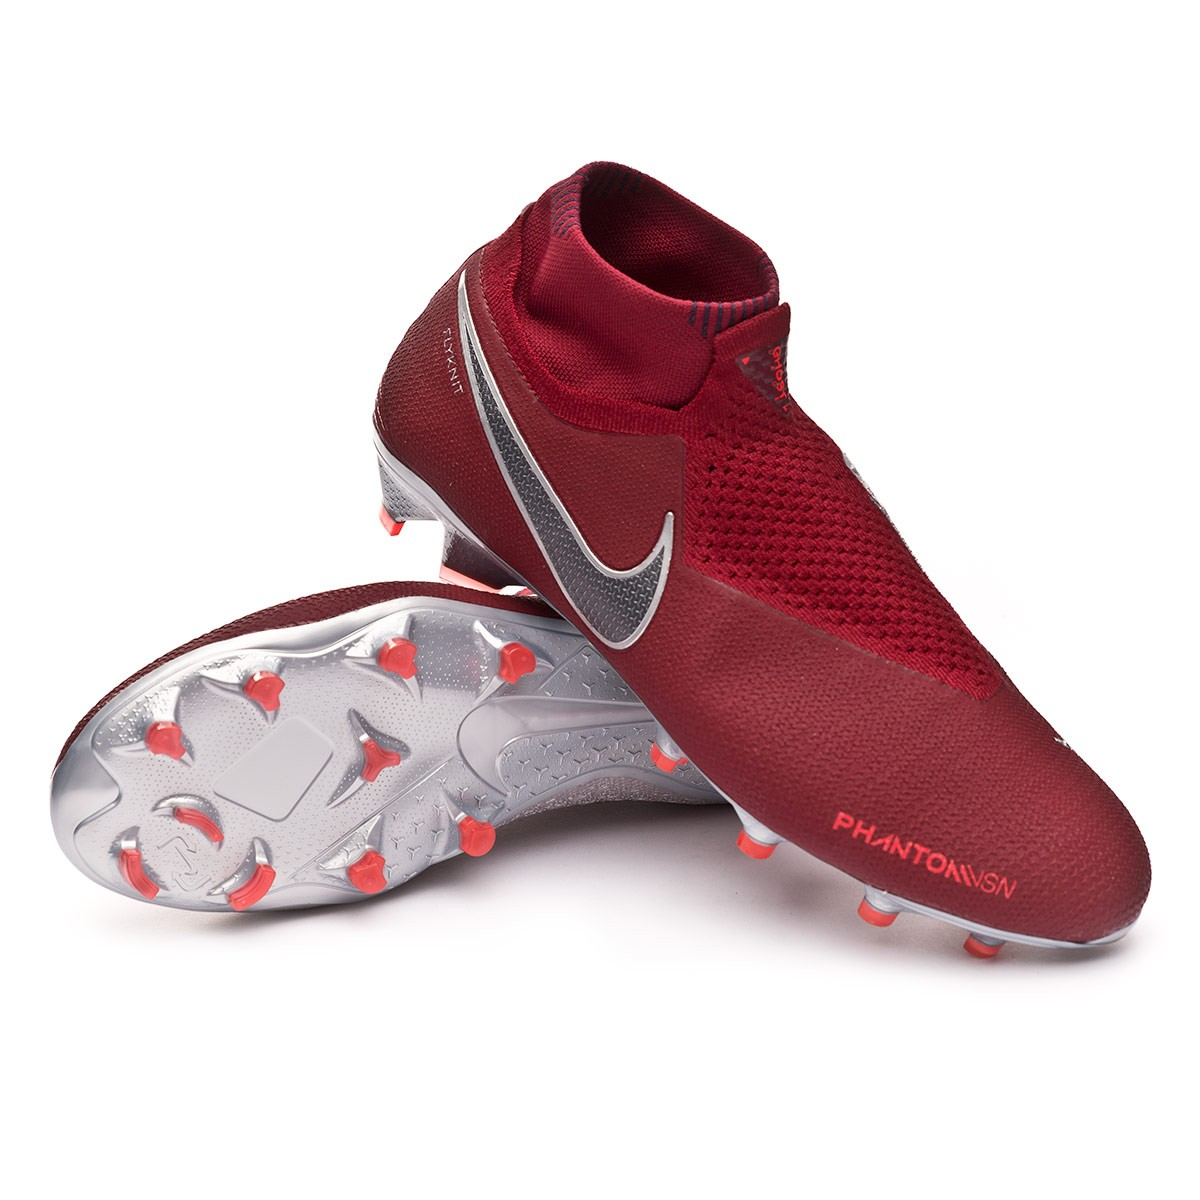 best website 2f69c aee49 Chuteira Nike Phantom Vision Elite DF FG Team red-Metallic dark grey-Bright  crimson - Loja de futebol Fútbol Emotion